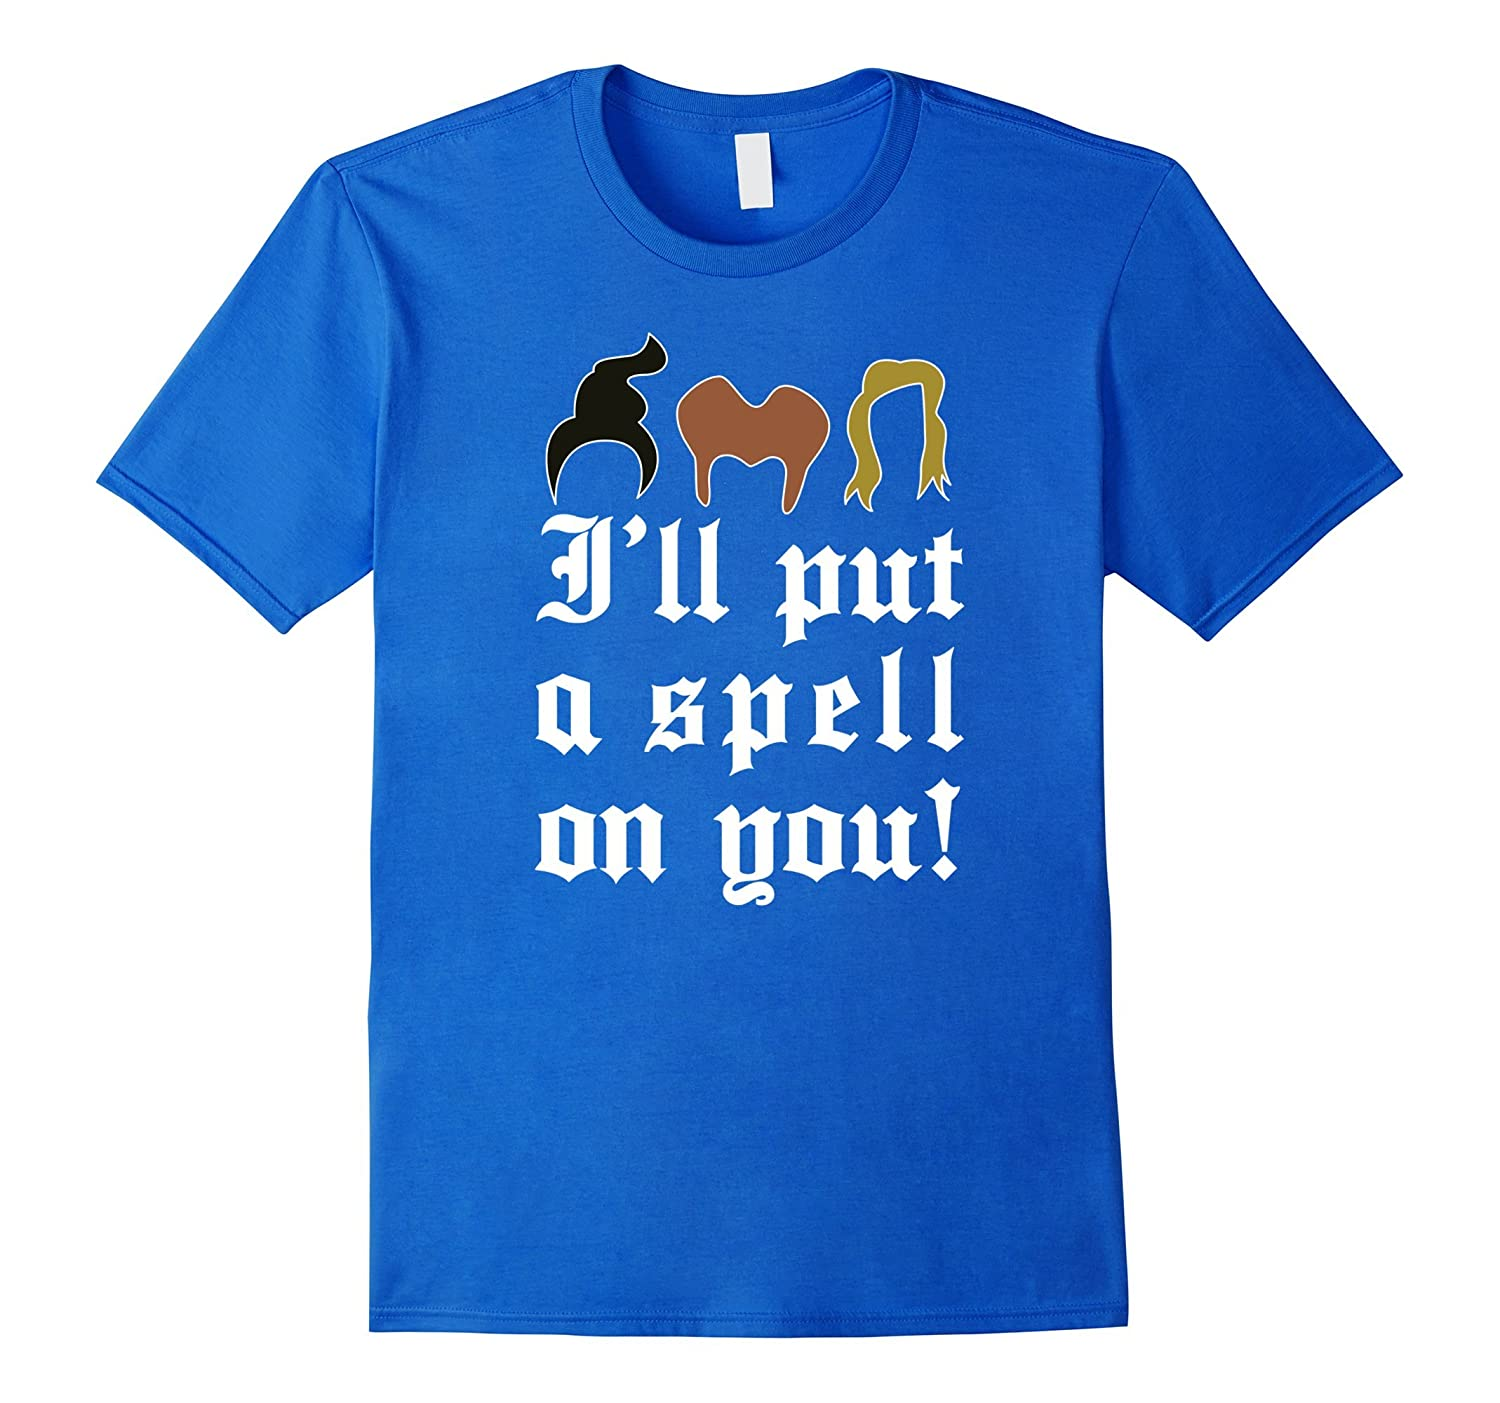 I'll Put a Spell on You - Funny Halloween Costume T-Shirt-CL